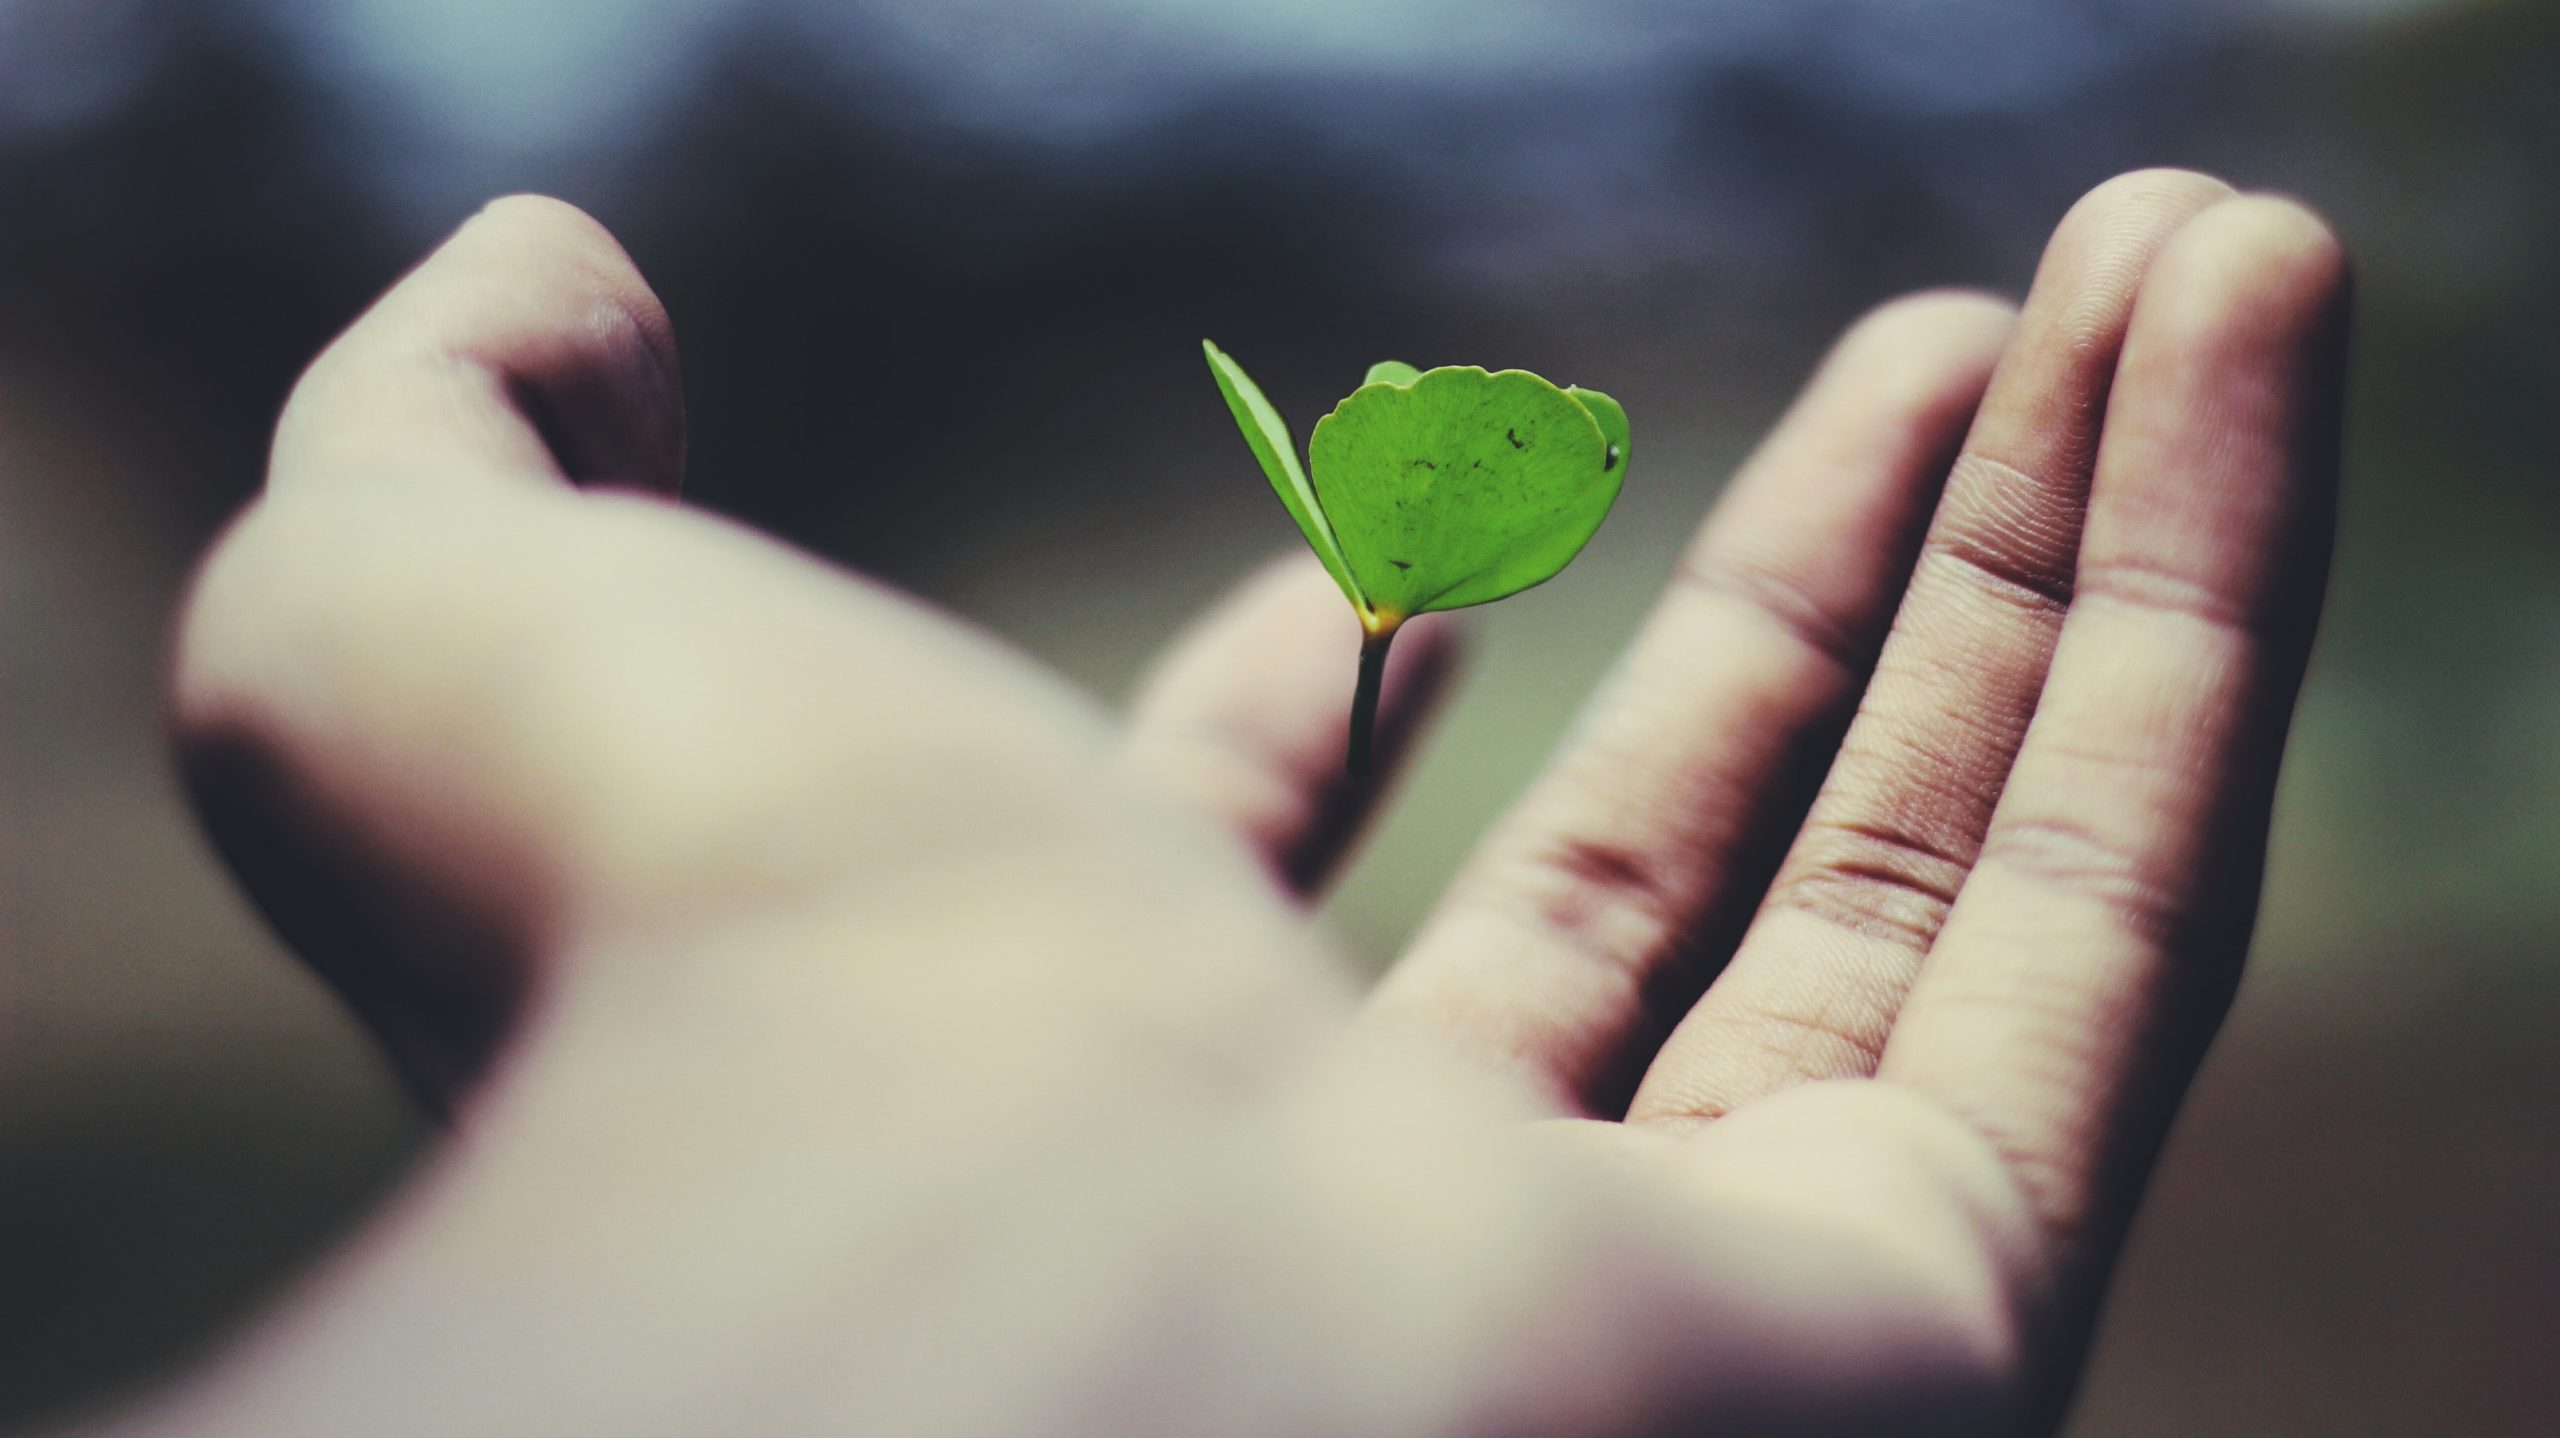 Plant budding in someone's hand. A metaphor for how the right philanthropy insights can help philanthropists' big gifts flourish.